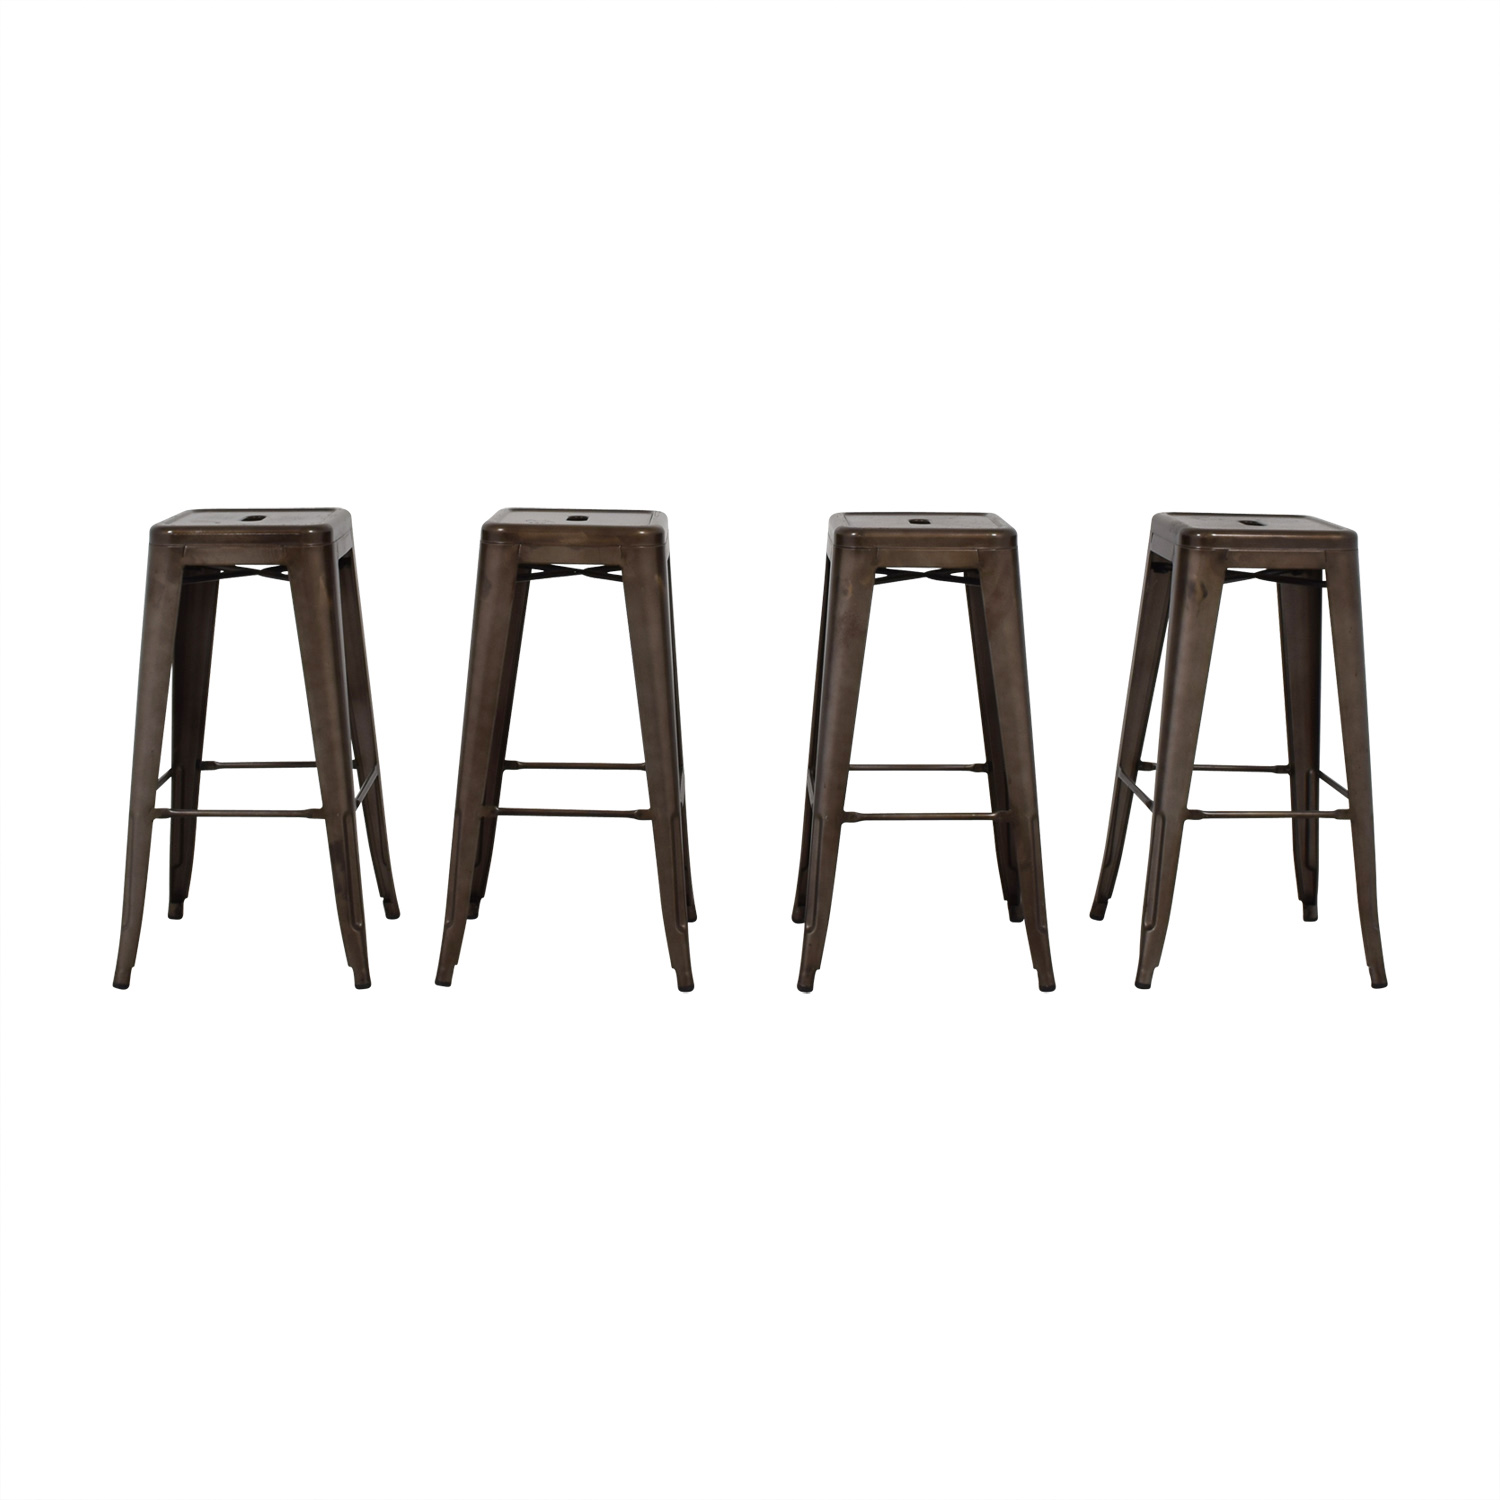 Tabouret Style Industrial Rustic Distressed Metal Bar Stools / Stools